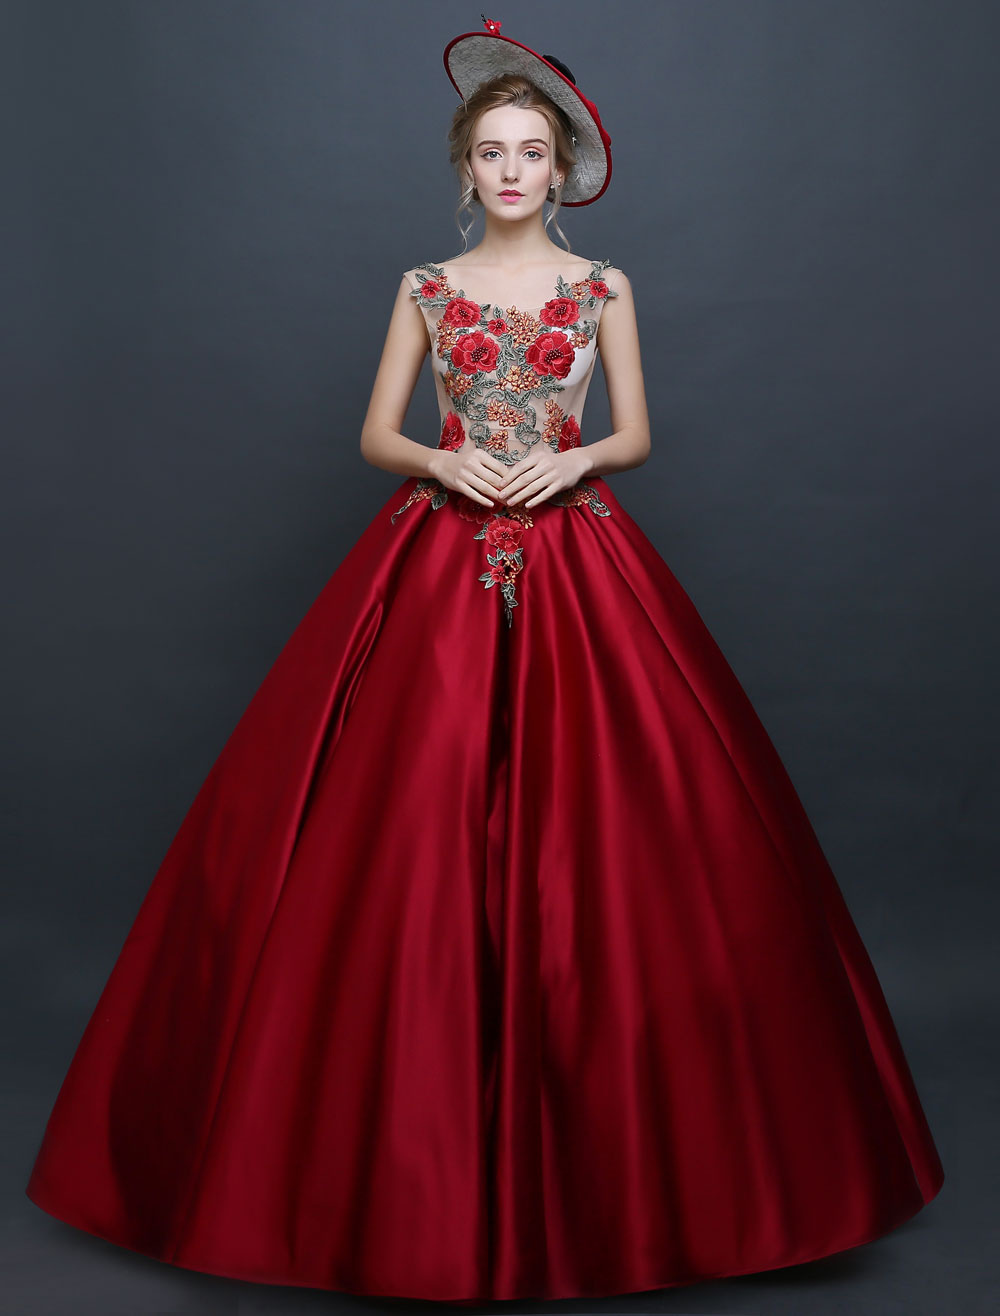 Burgundy Victorian Princess Ball Gown Chic Satin Costume - Buy Online